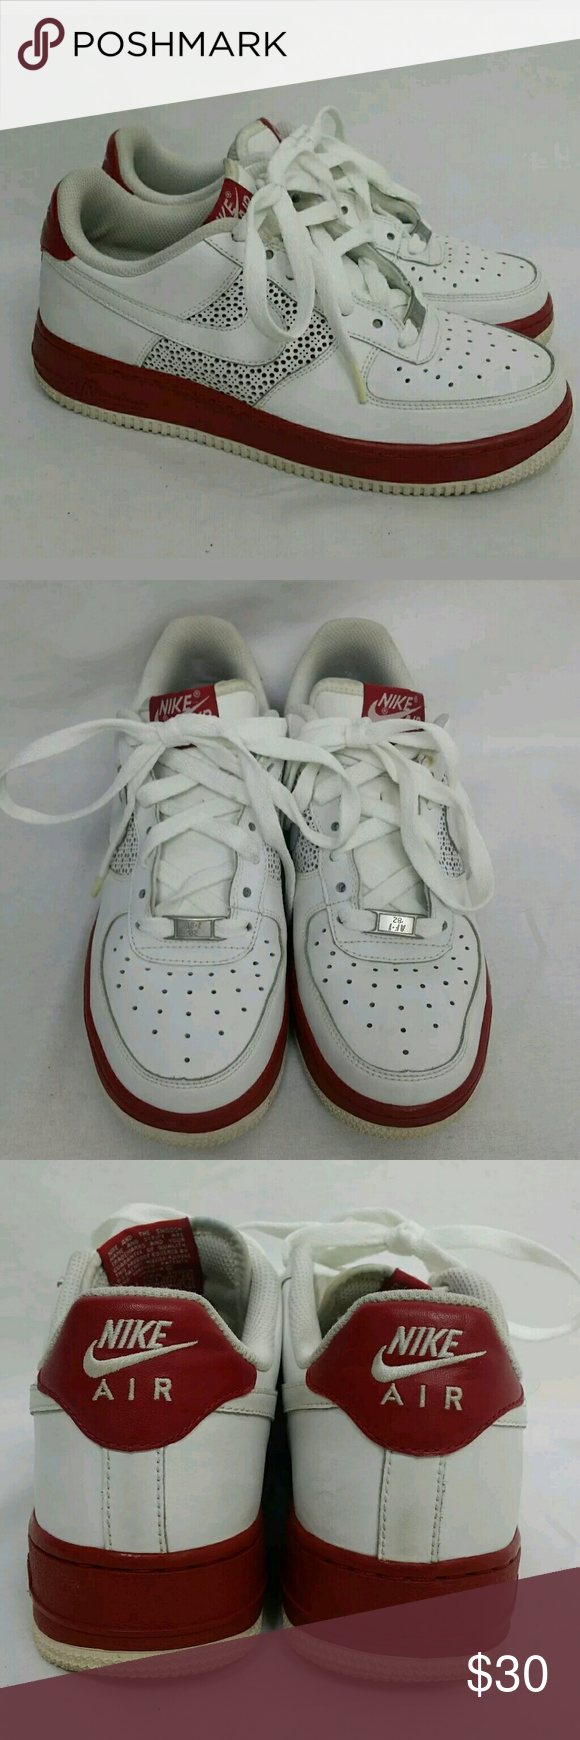 Red Size Air 6 Nike White Force 1 Youth Sneakers 5 c5jARq34SL